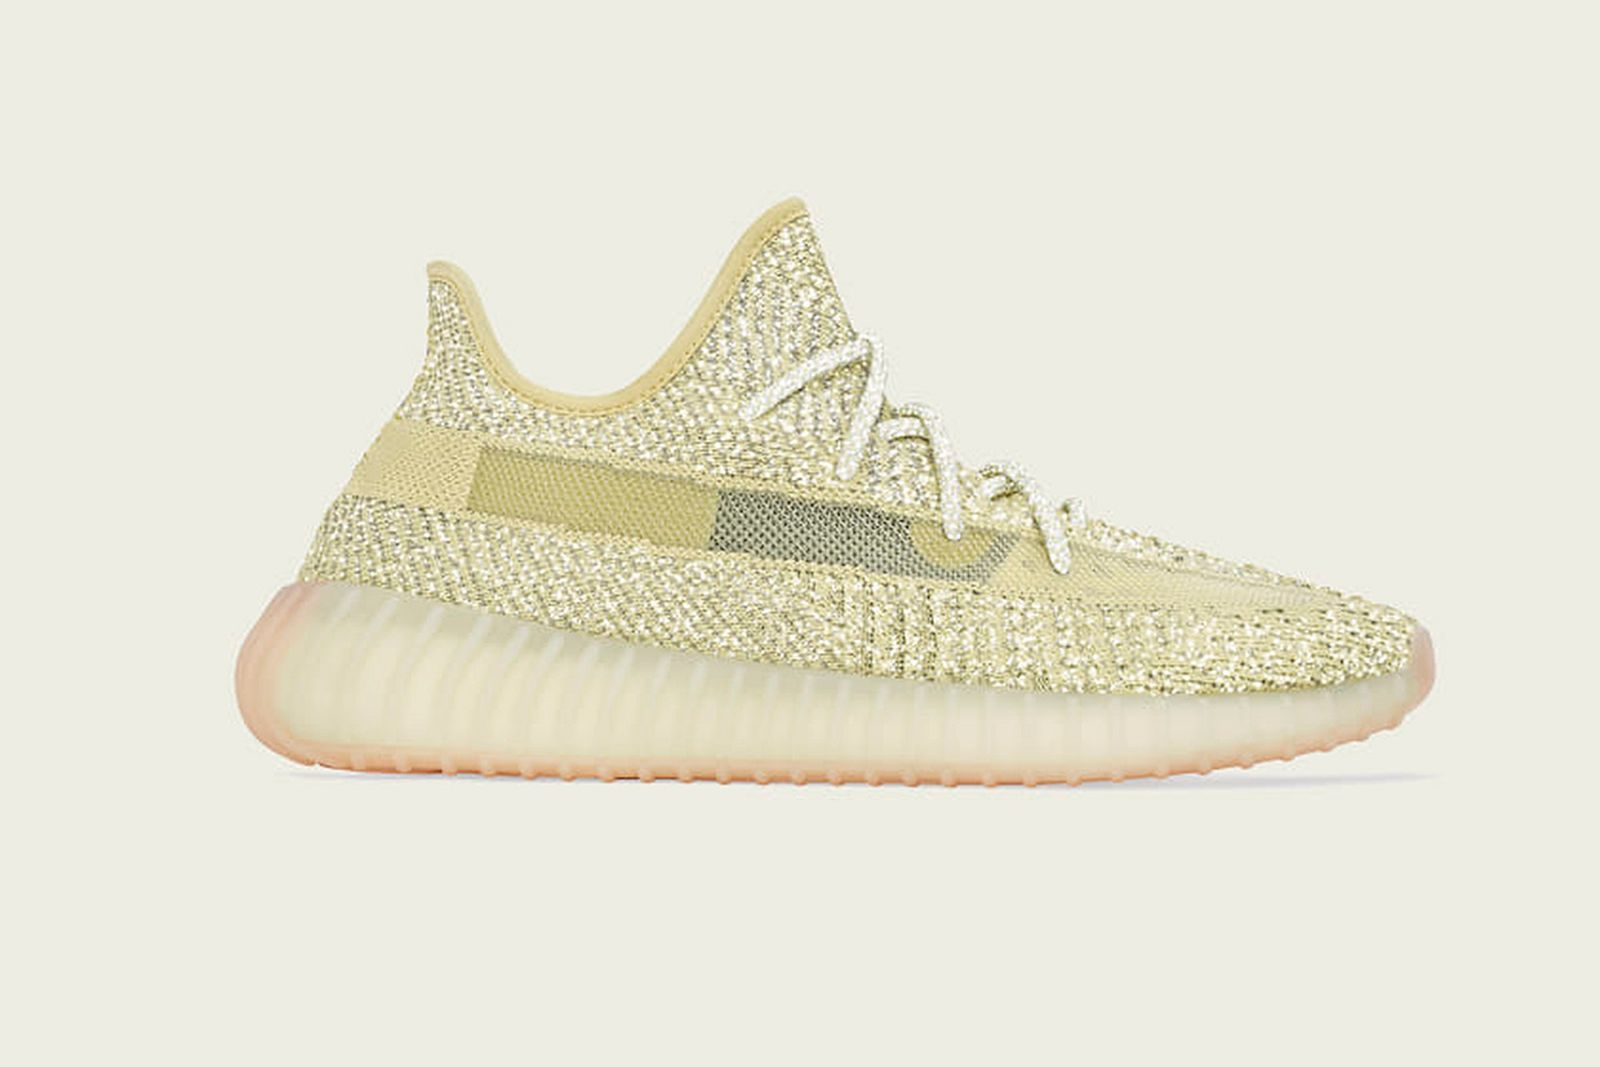 adidas originals yeezy boost 350 v2 antlia reflective release date price Grailed StockX adidas yeezy boost 350 v2